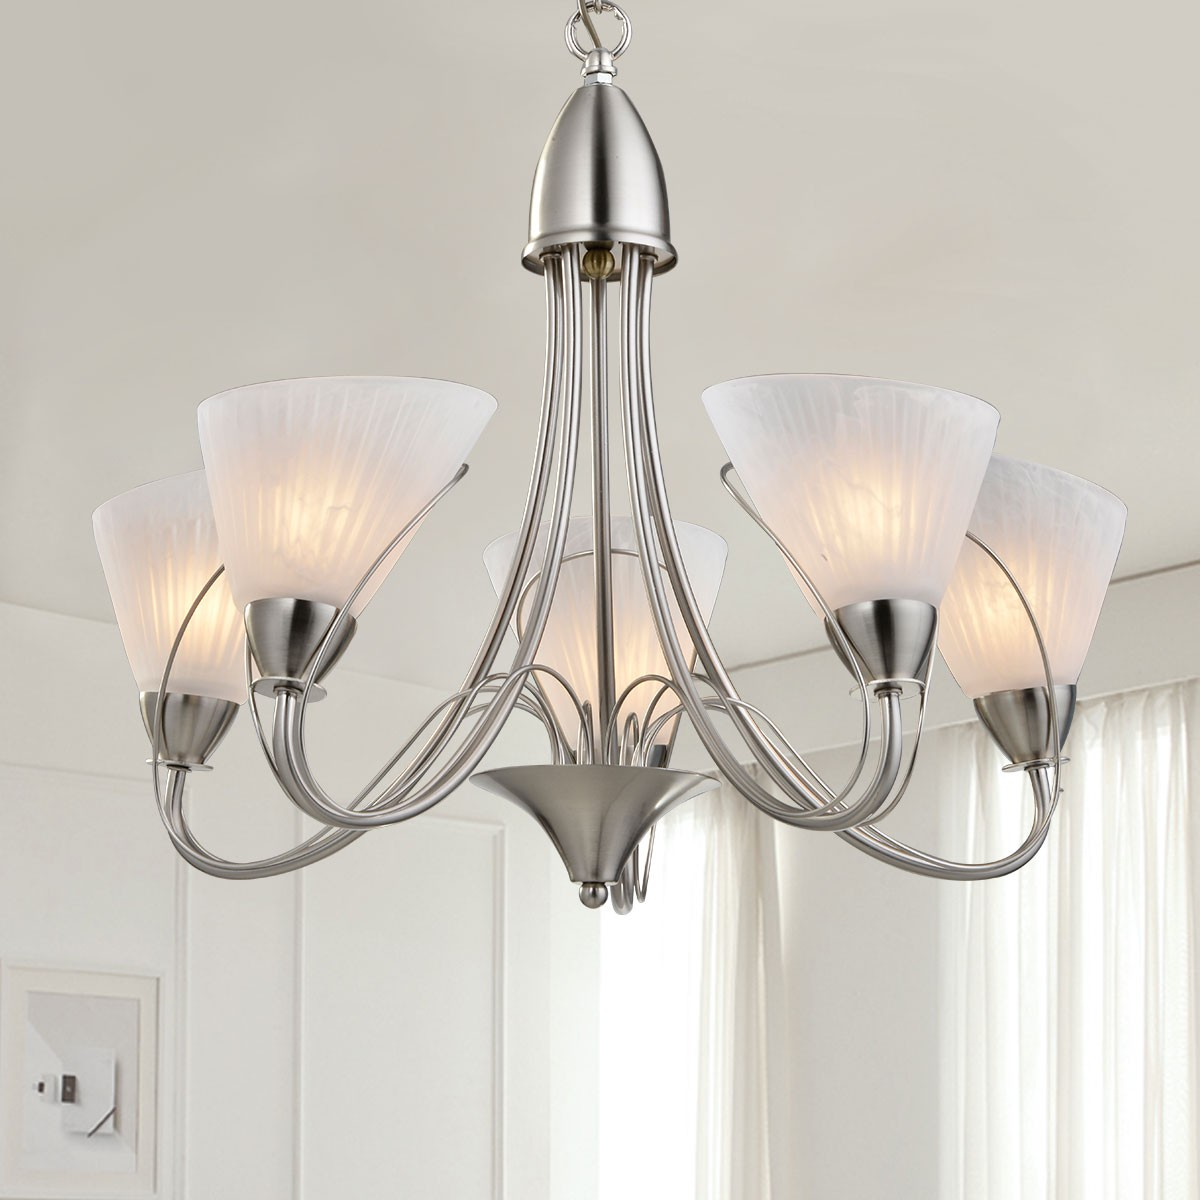 5 Light Silver Iron Modern Chandelier With Glass Shades Hkp31262